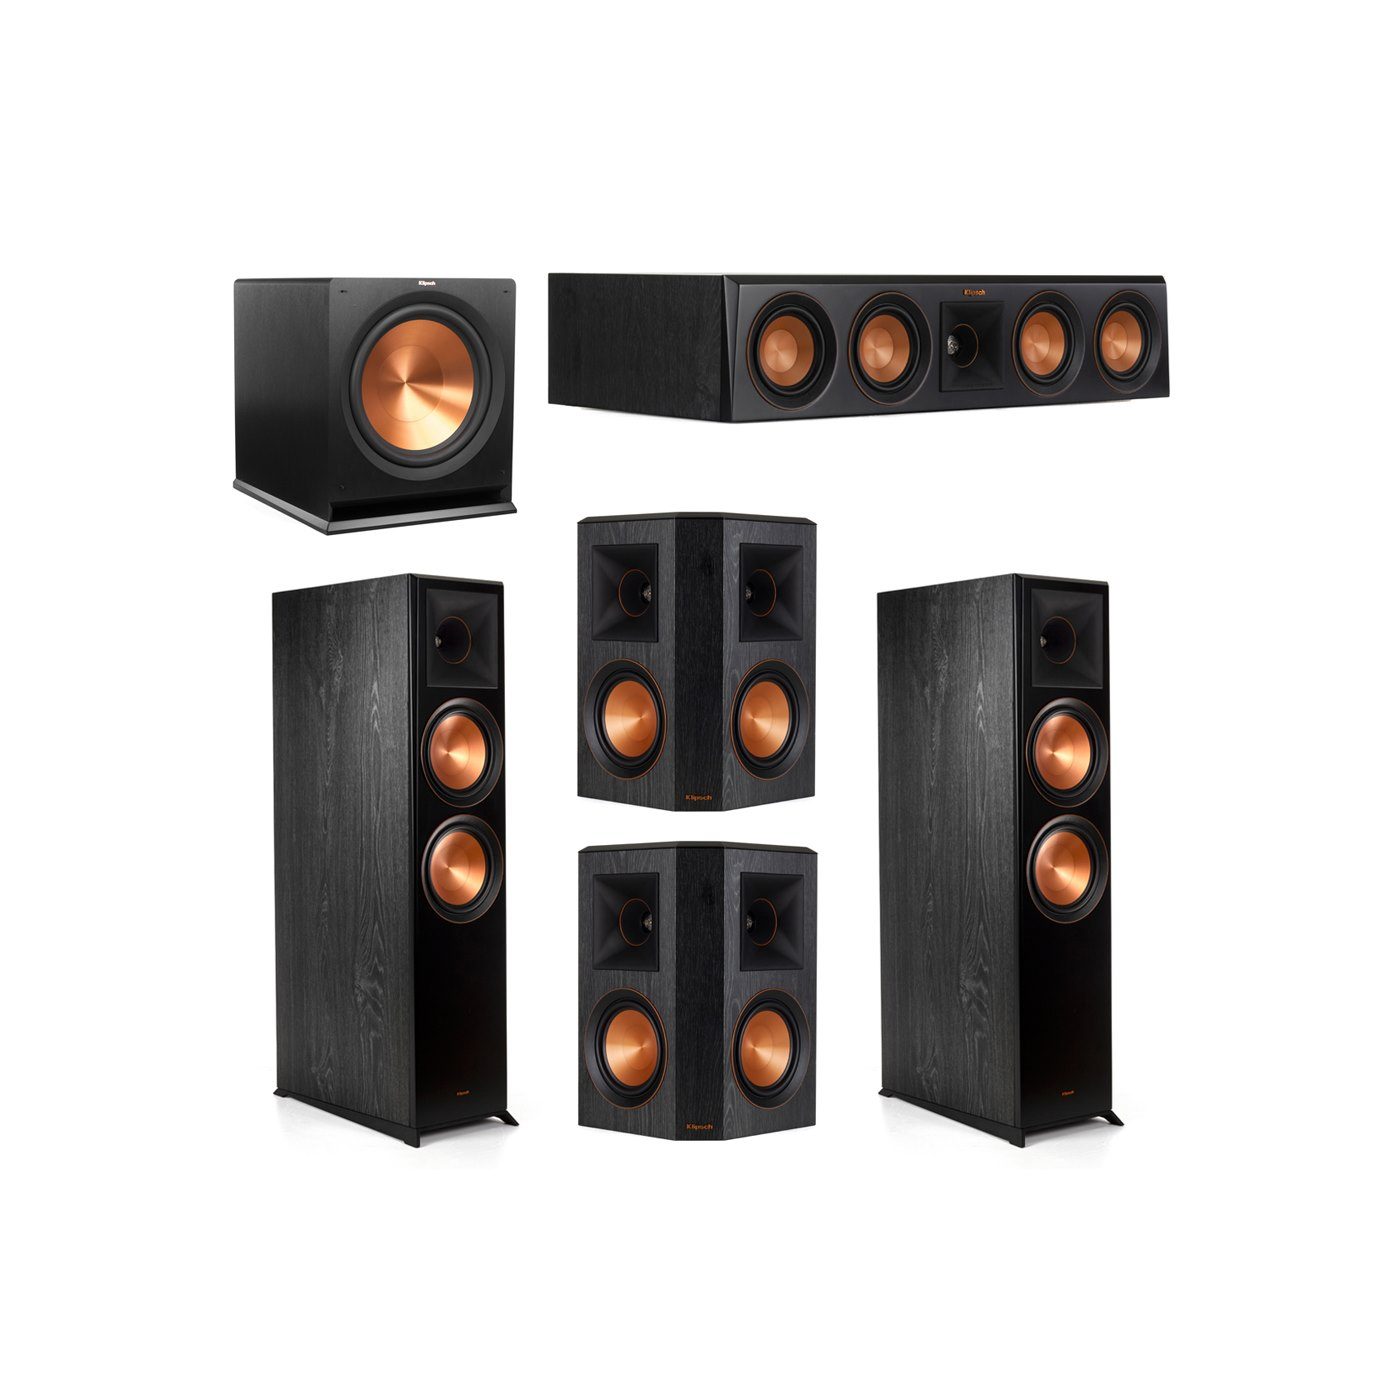 Klipsch 5.1.2 System - 2 RP-8060FA Dolby Atmos Speakers, 1 RP-404C, 2 RP-502S Speakers, 1 R-115SW